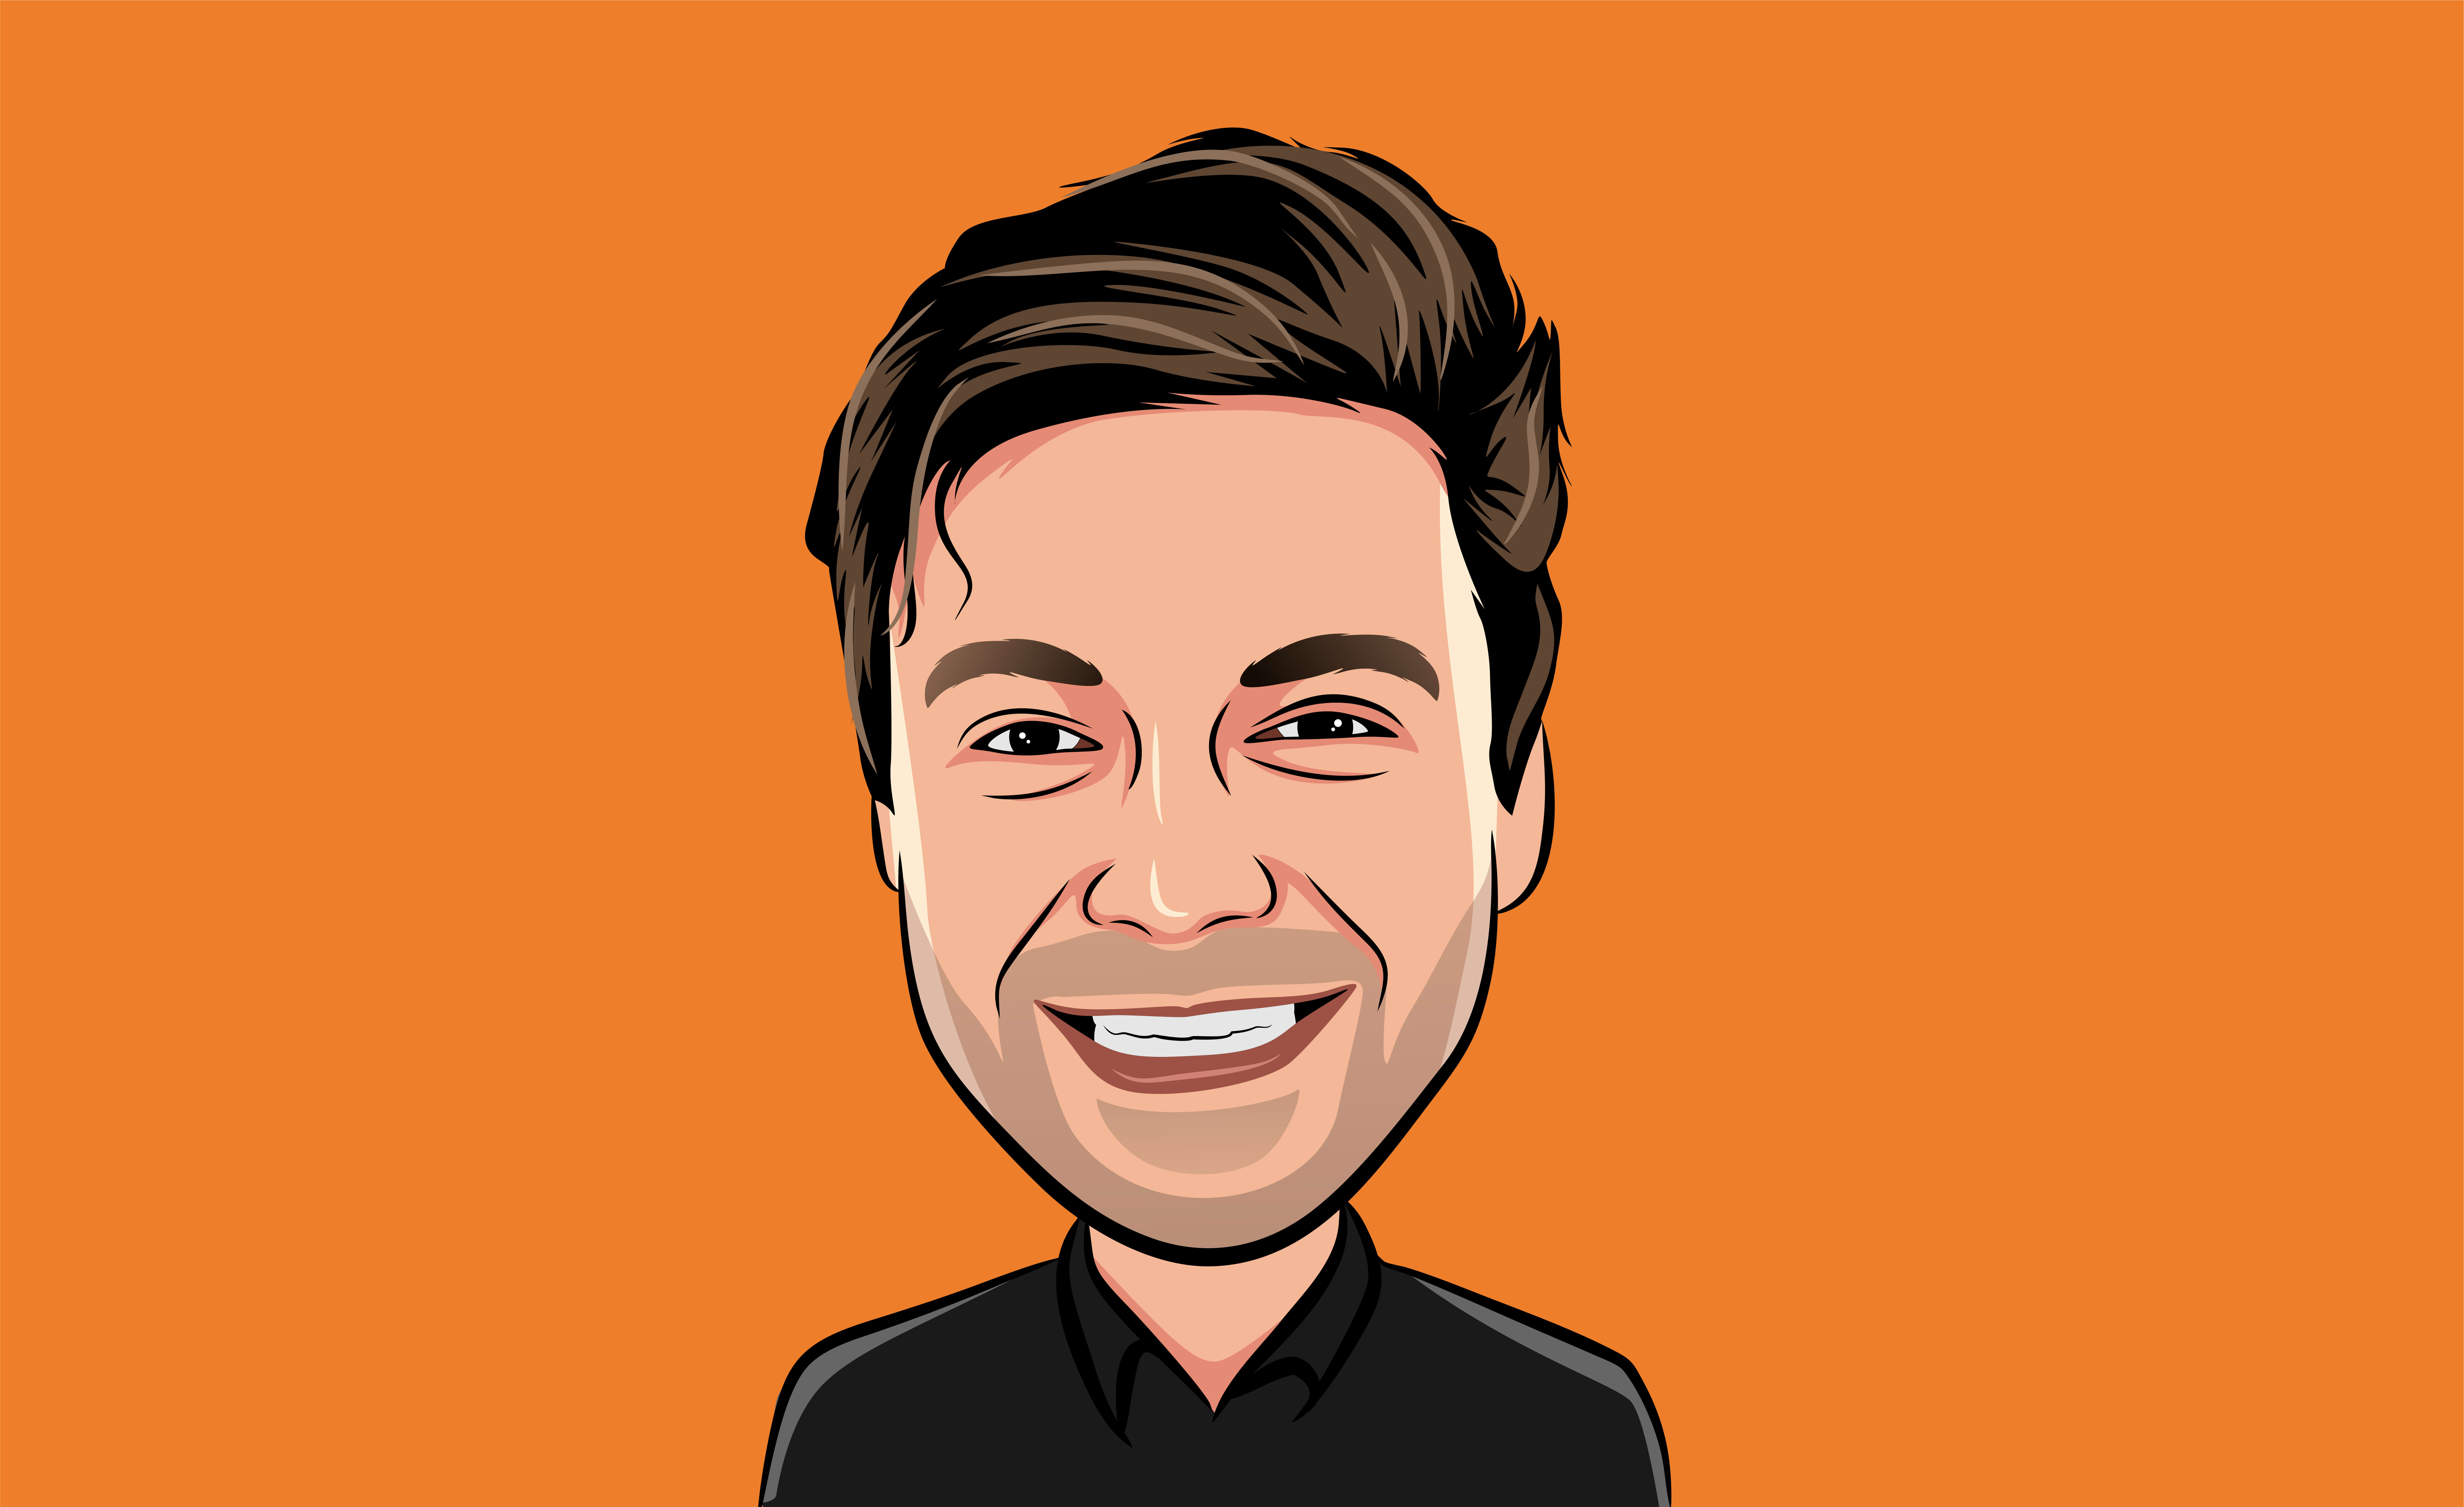 Draw Nice Style Cartoon Caricature As A Profile Picture By Zoelfadli